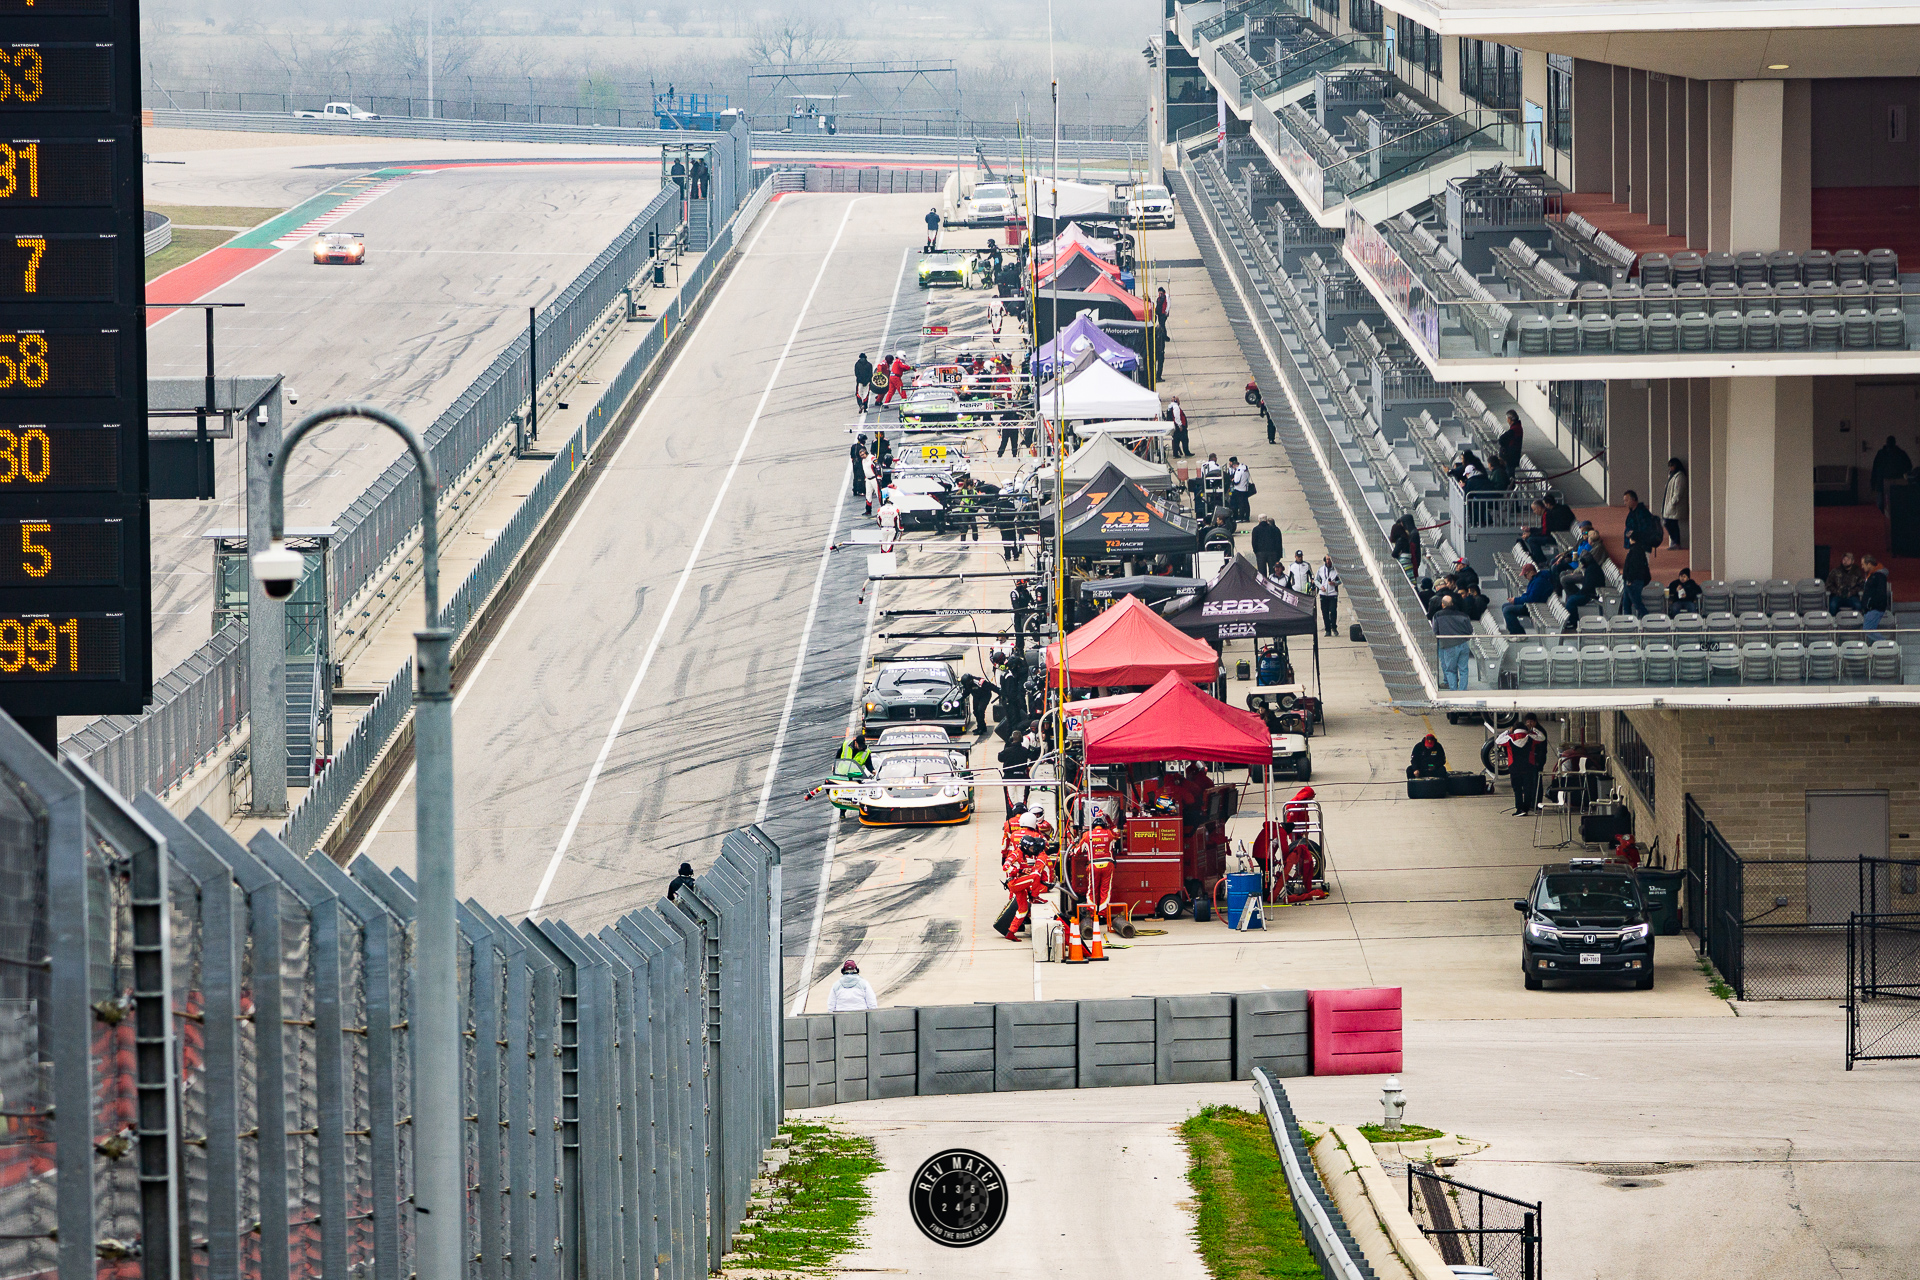 Blancpain-GT-COTA-2019-Rev-Match-Media-232.jpg